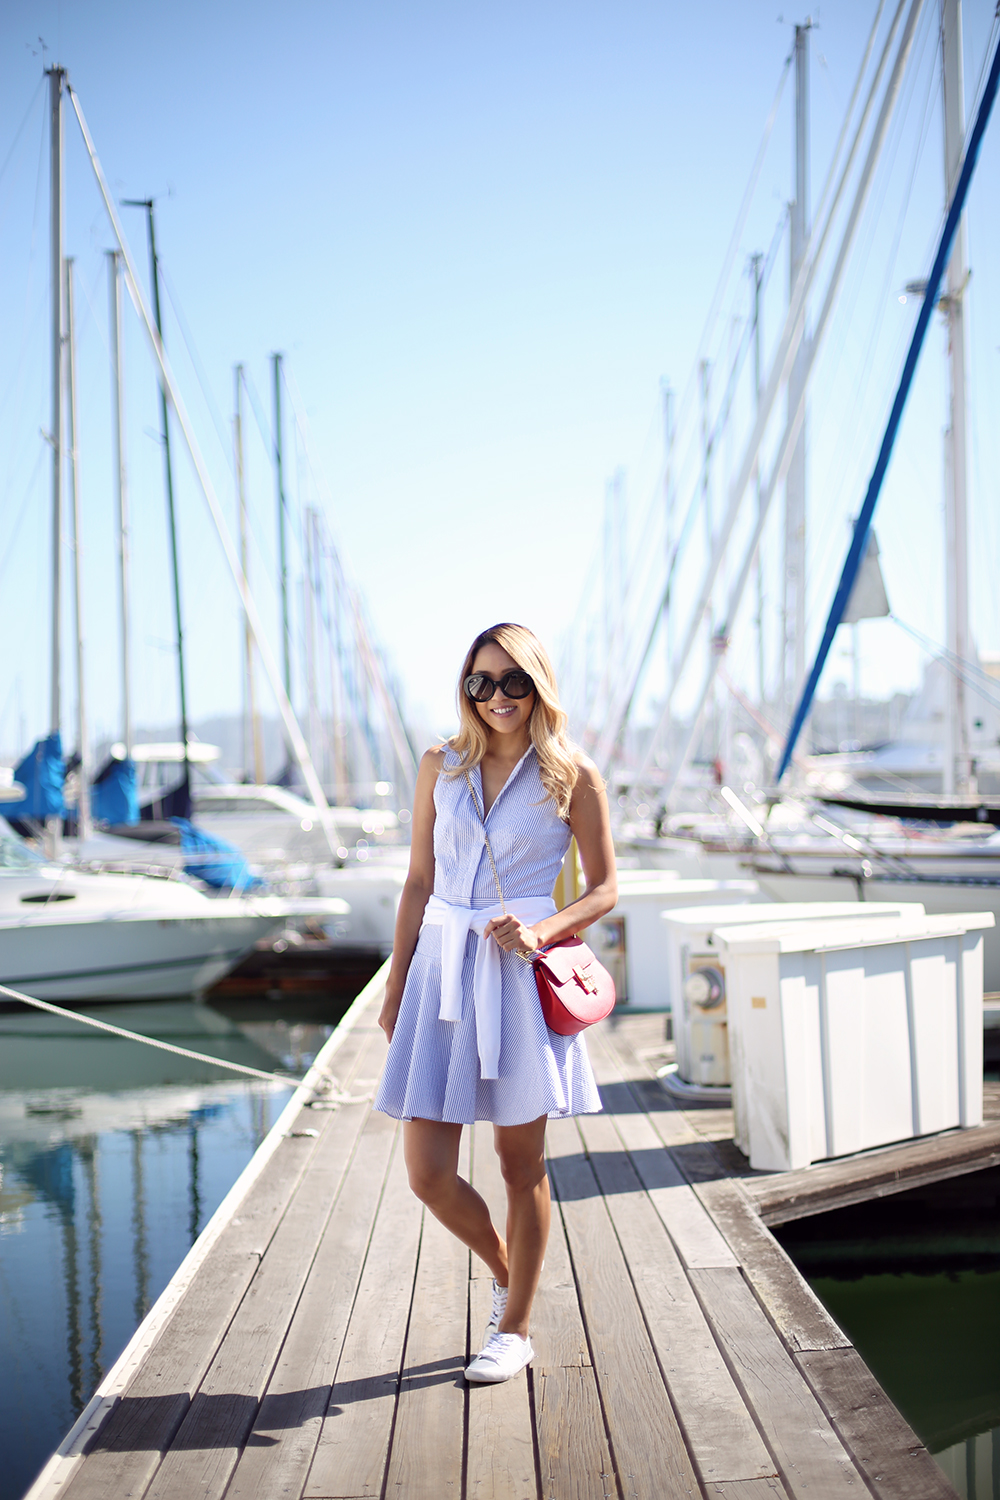 Beyond Basic Blog Seersucker in Sausalito Armani Exchange Shirt Dress